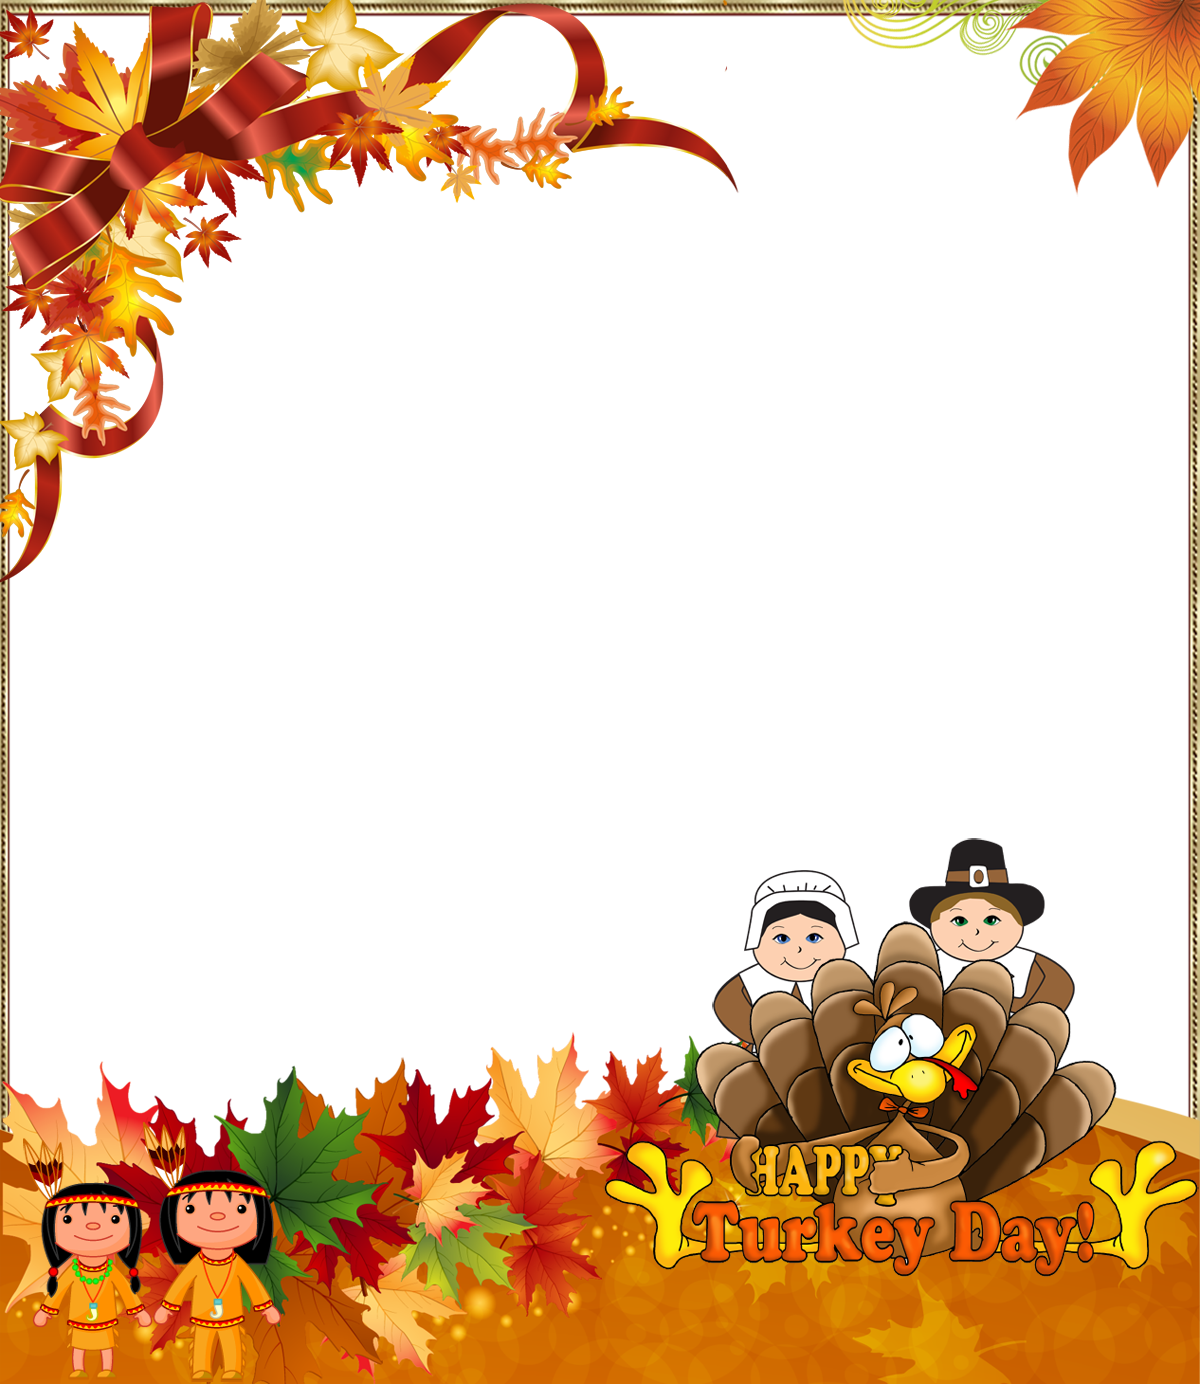 Modern thanksgiving clipart transparent download Thanksgiving PNG Photo Frame Happy Turkey Day | Gallery ... transparent download